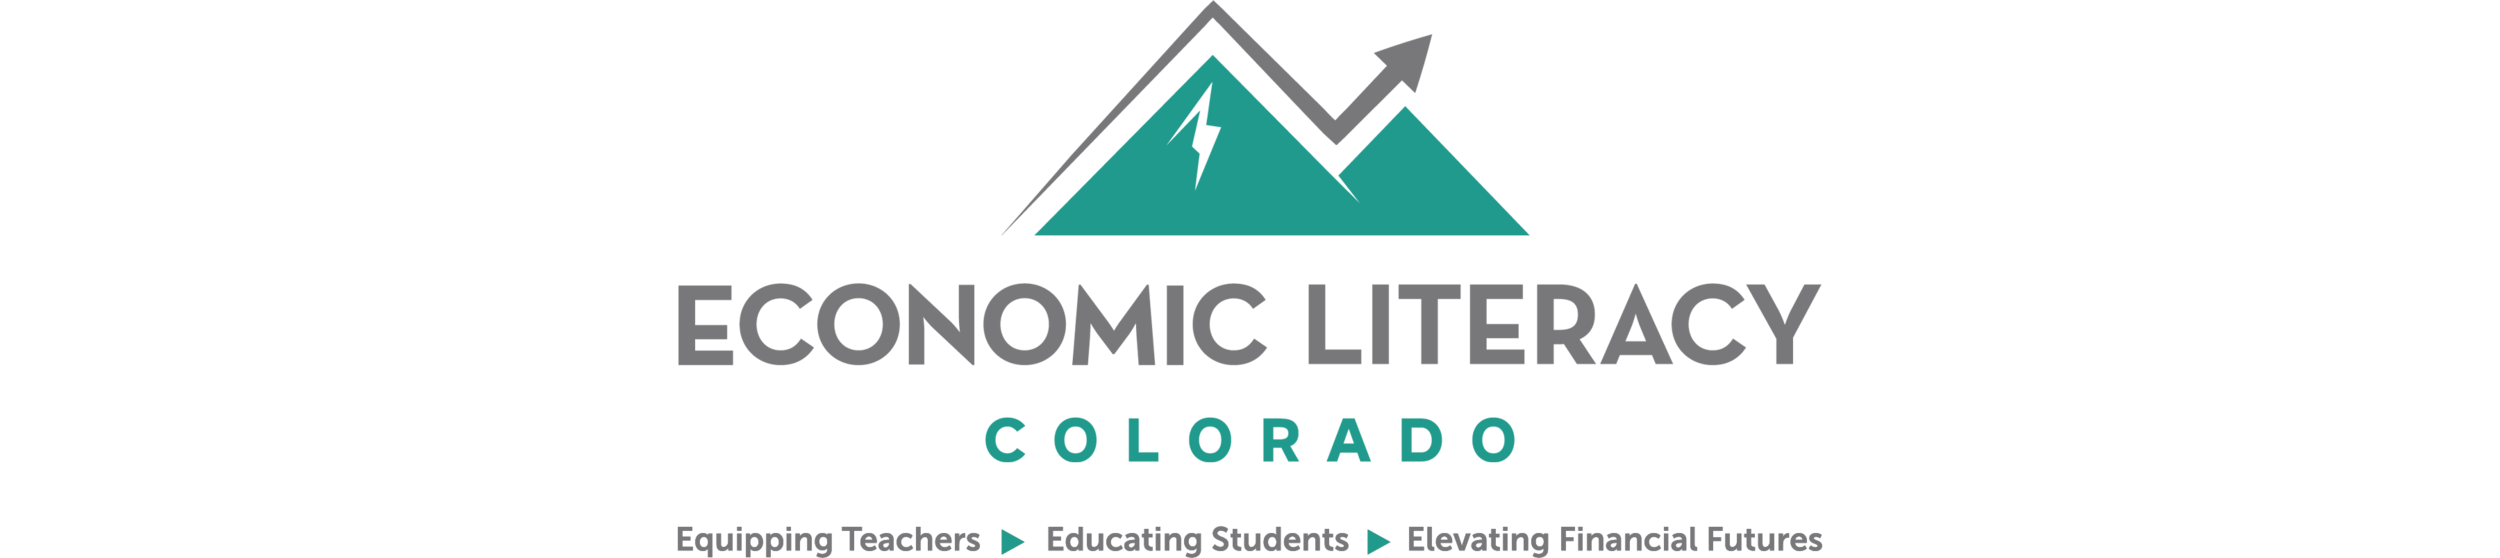 EconLit Colorado Color Vertical with Larger Tagline for Website.png